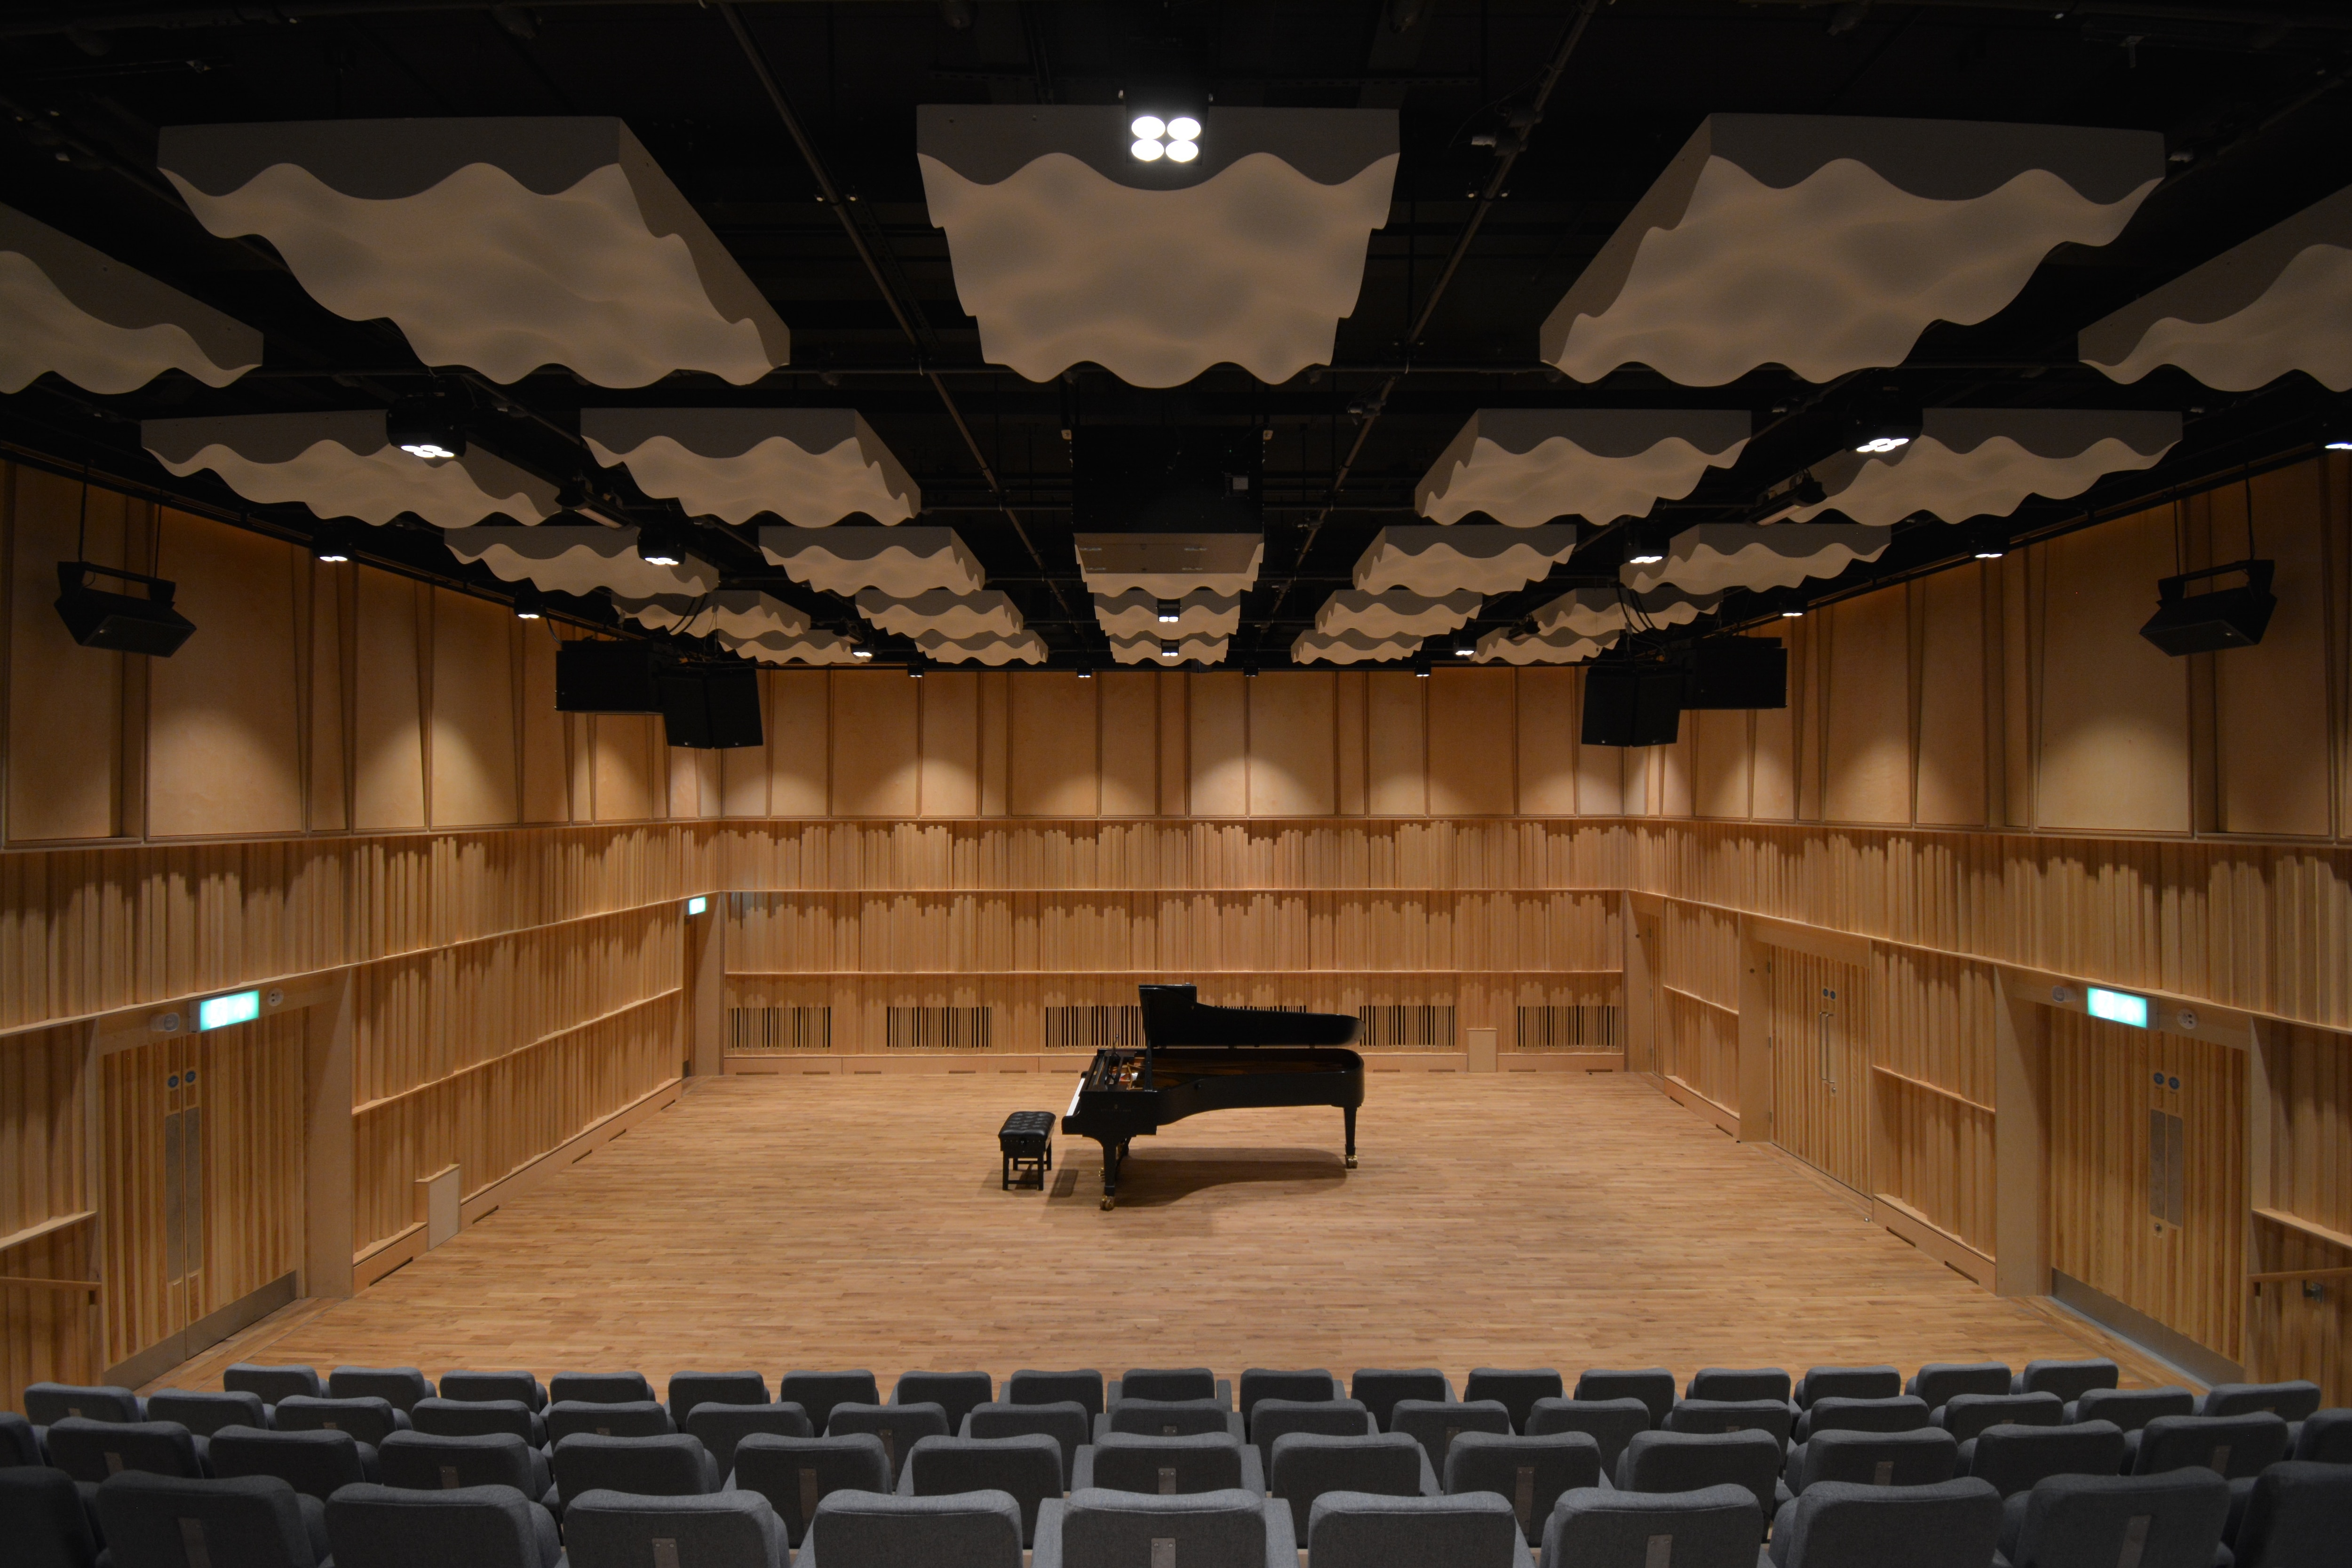 Recital space